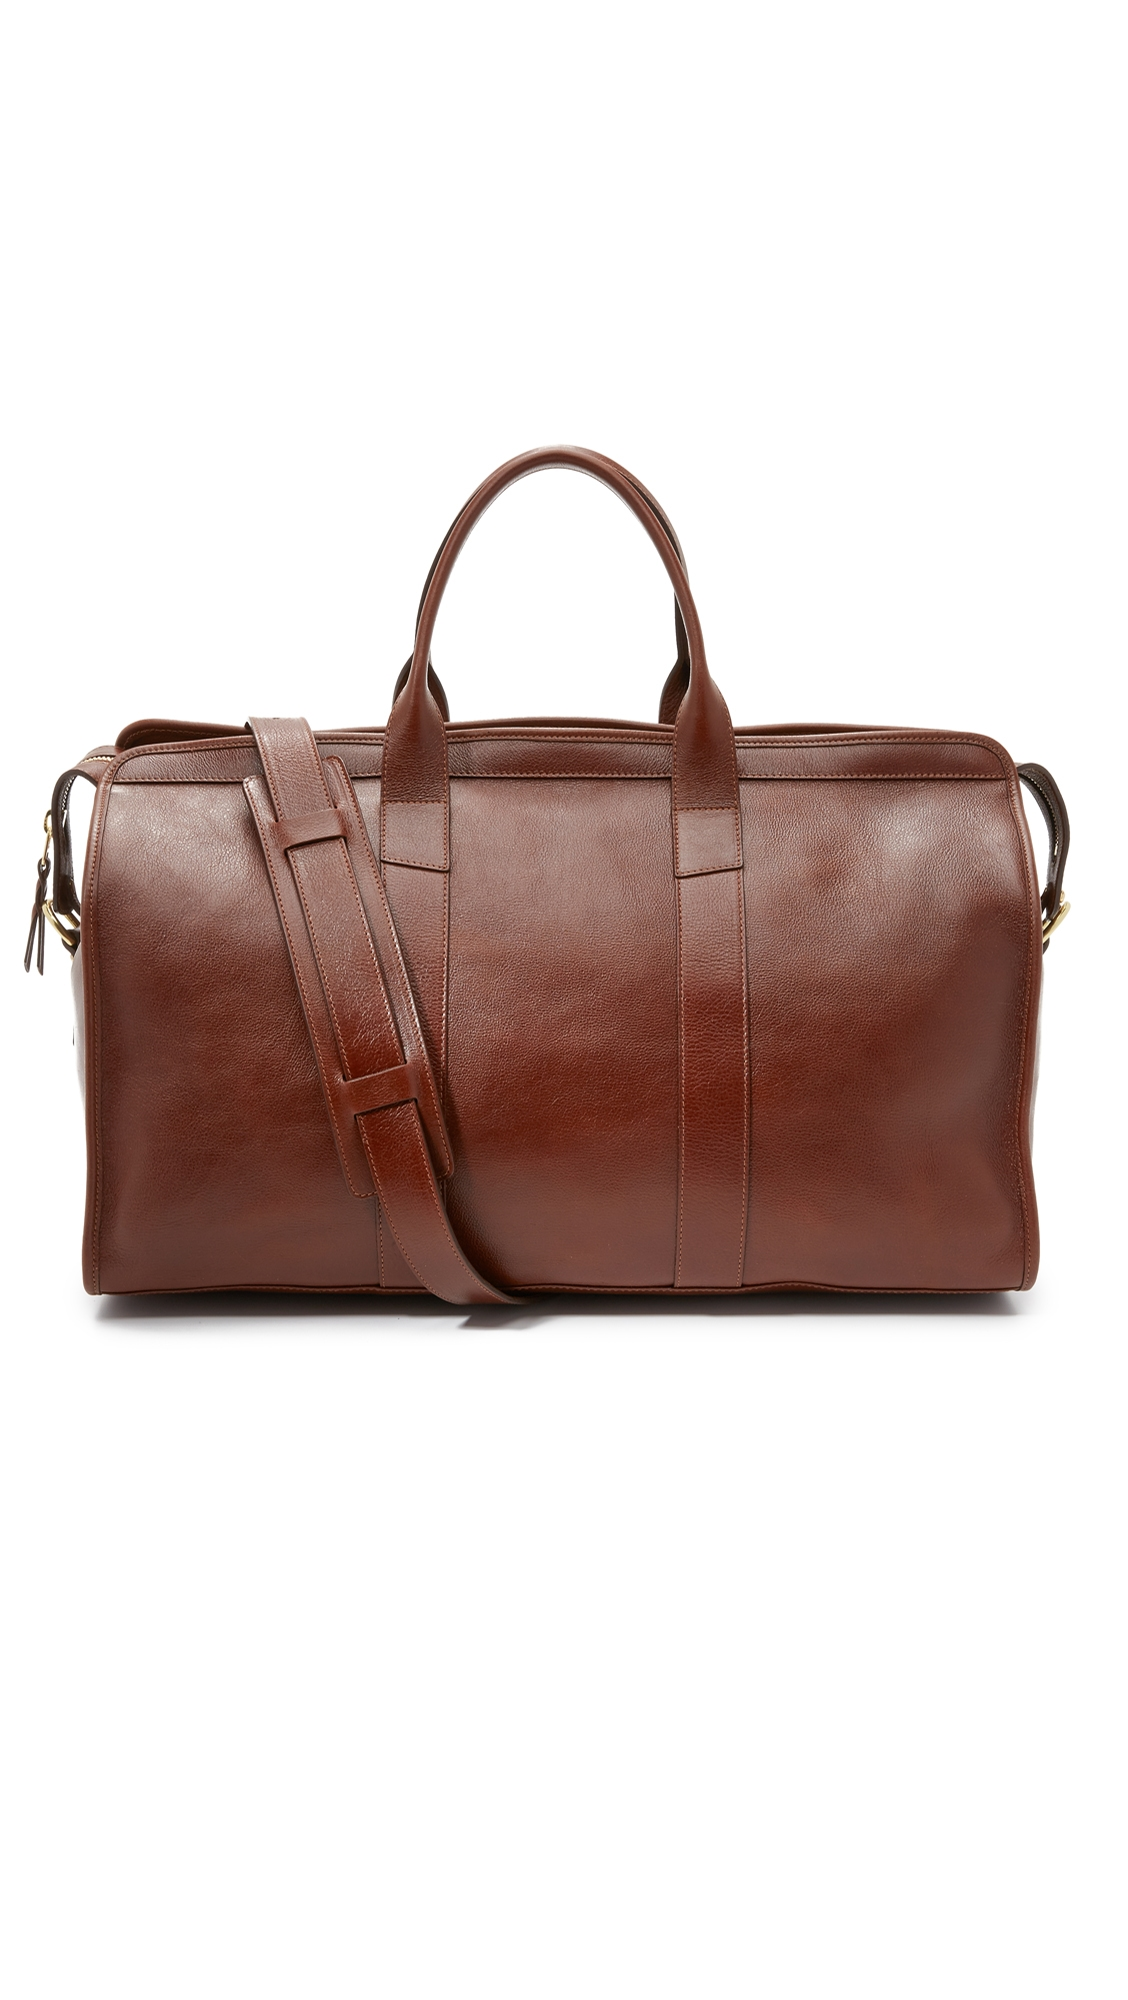 LOTUFF LEATHER Duffel Travel Bag With Pocket in Chestnut